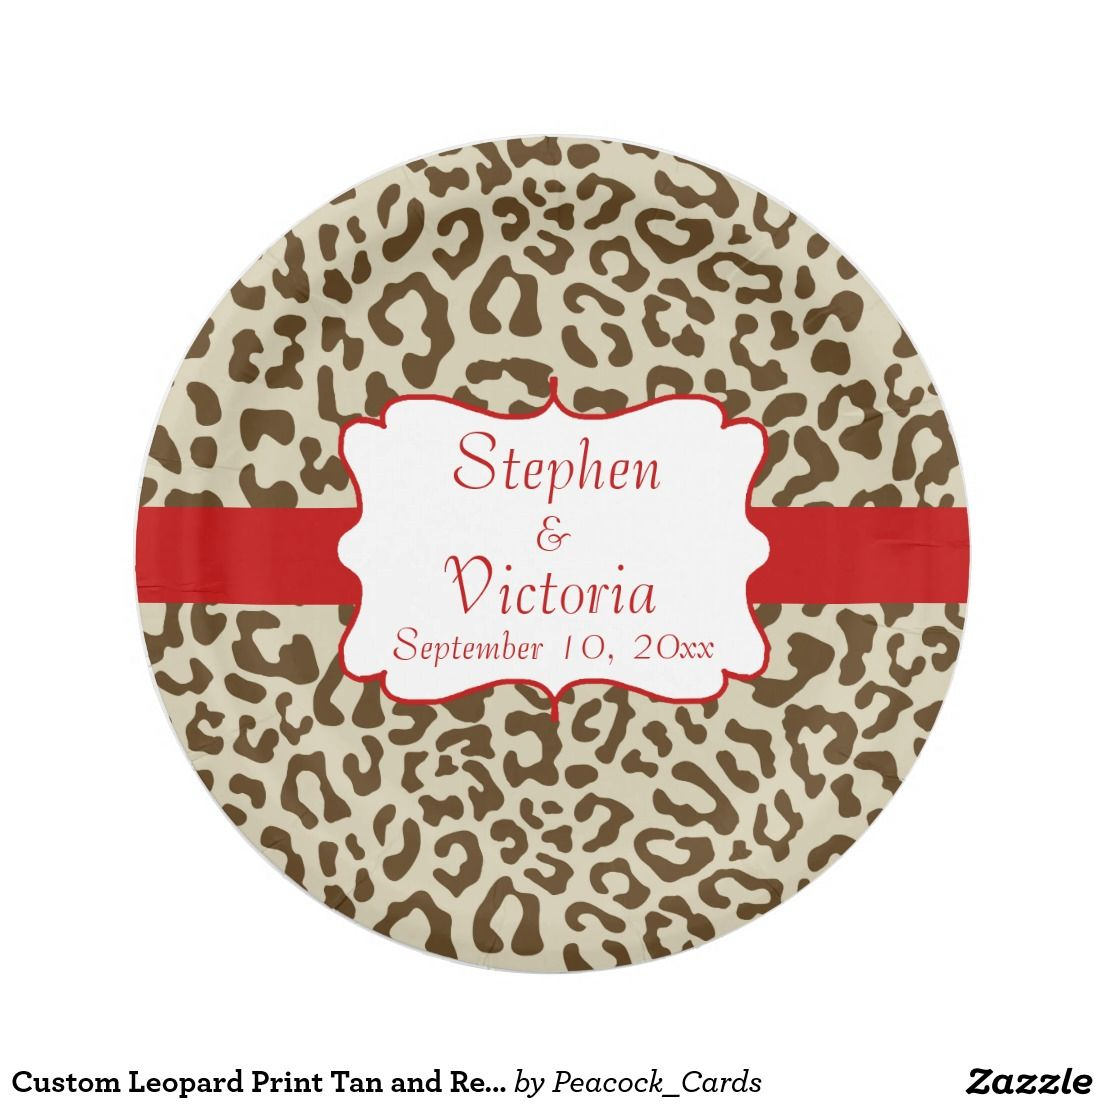 Custom Leopard Print Tan and Red Paper Plates  sc 1 st  Pinterest & Custom Leopard Print Tan and Red Paper Plates | ??????? | Pinterest ...